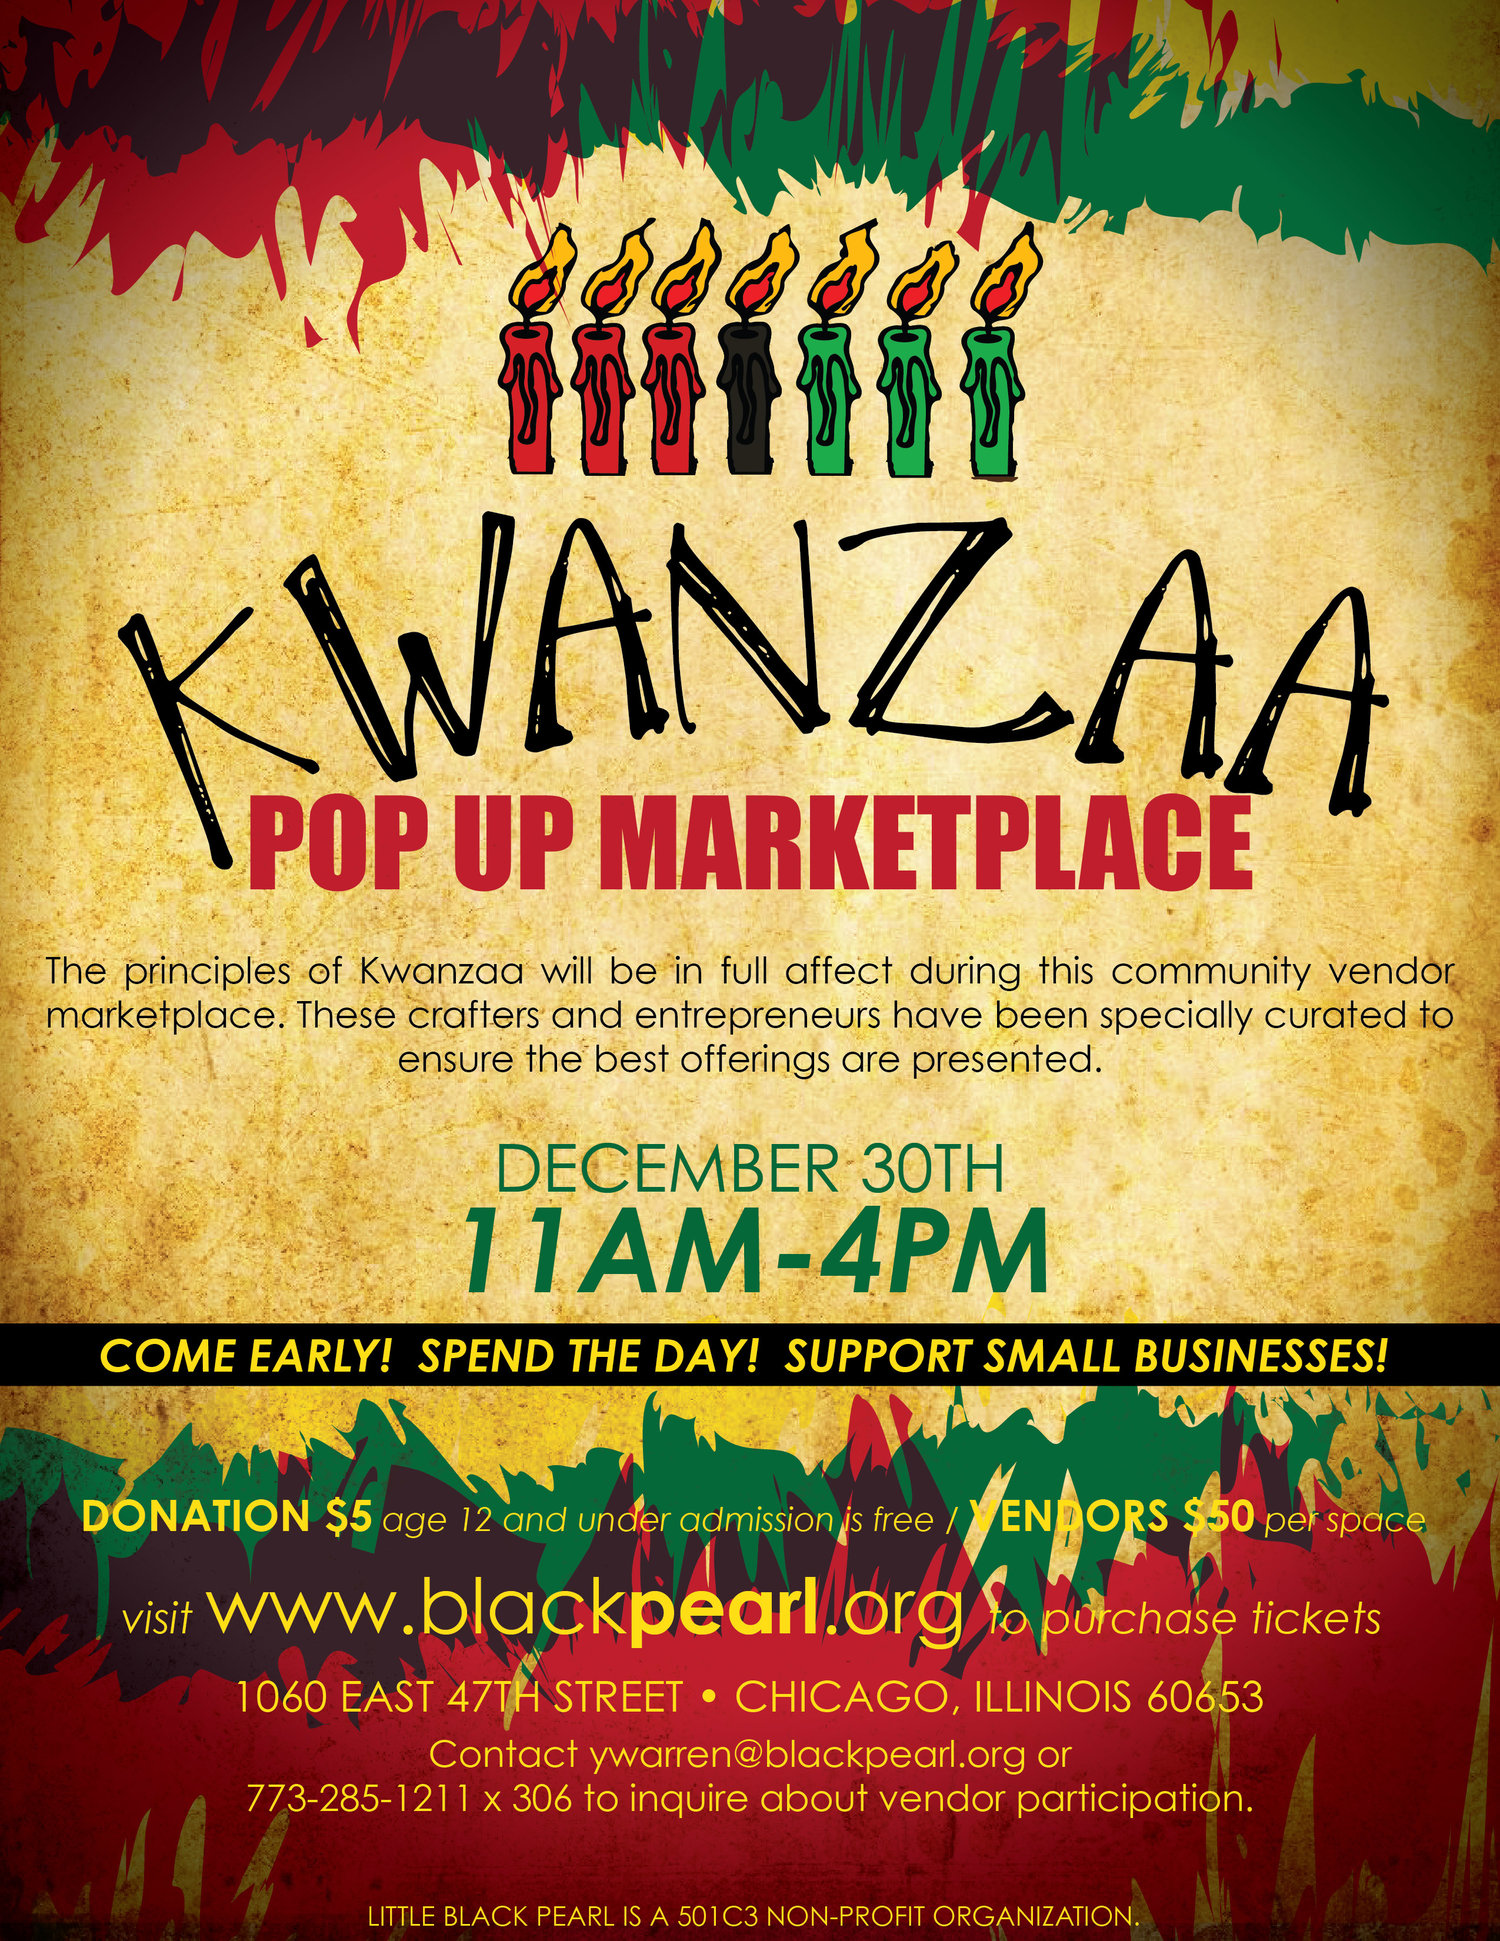 Kwanzaa POP UP Marketplace — Little Black Pearl on map of sociology, map of home, map of thanksgiving, map of valentine's day, map of food, map of africa, map of geography, map of martin luther king, map of dongzhi festival, map of halloween, map of boxing day, map of spring, map of art, map of christmas around the world, map of three kings day, map of hanukkah, map of holi, map of mischief night, map of easter, map of holiday,